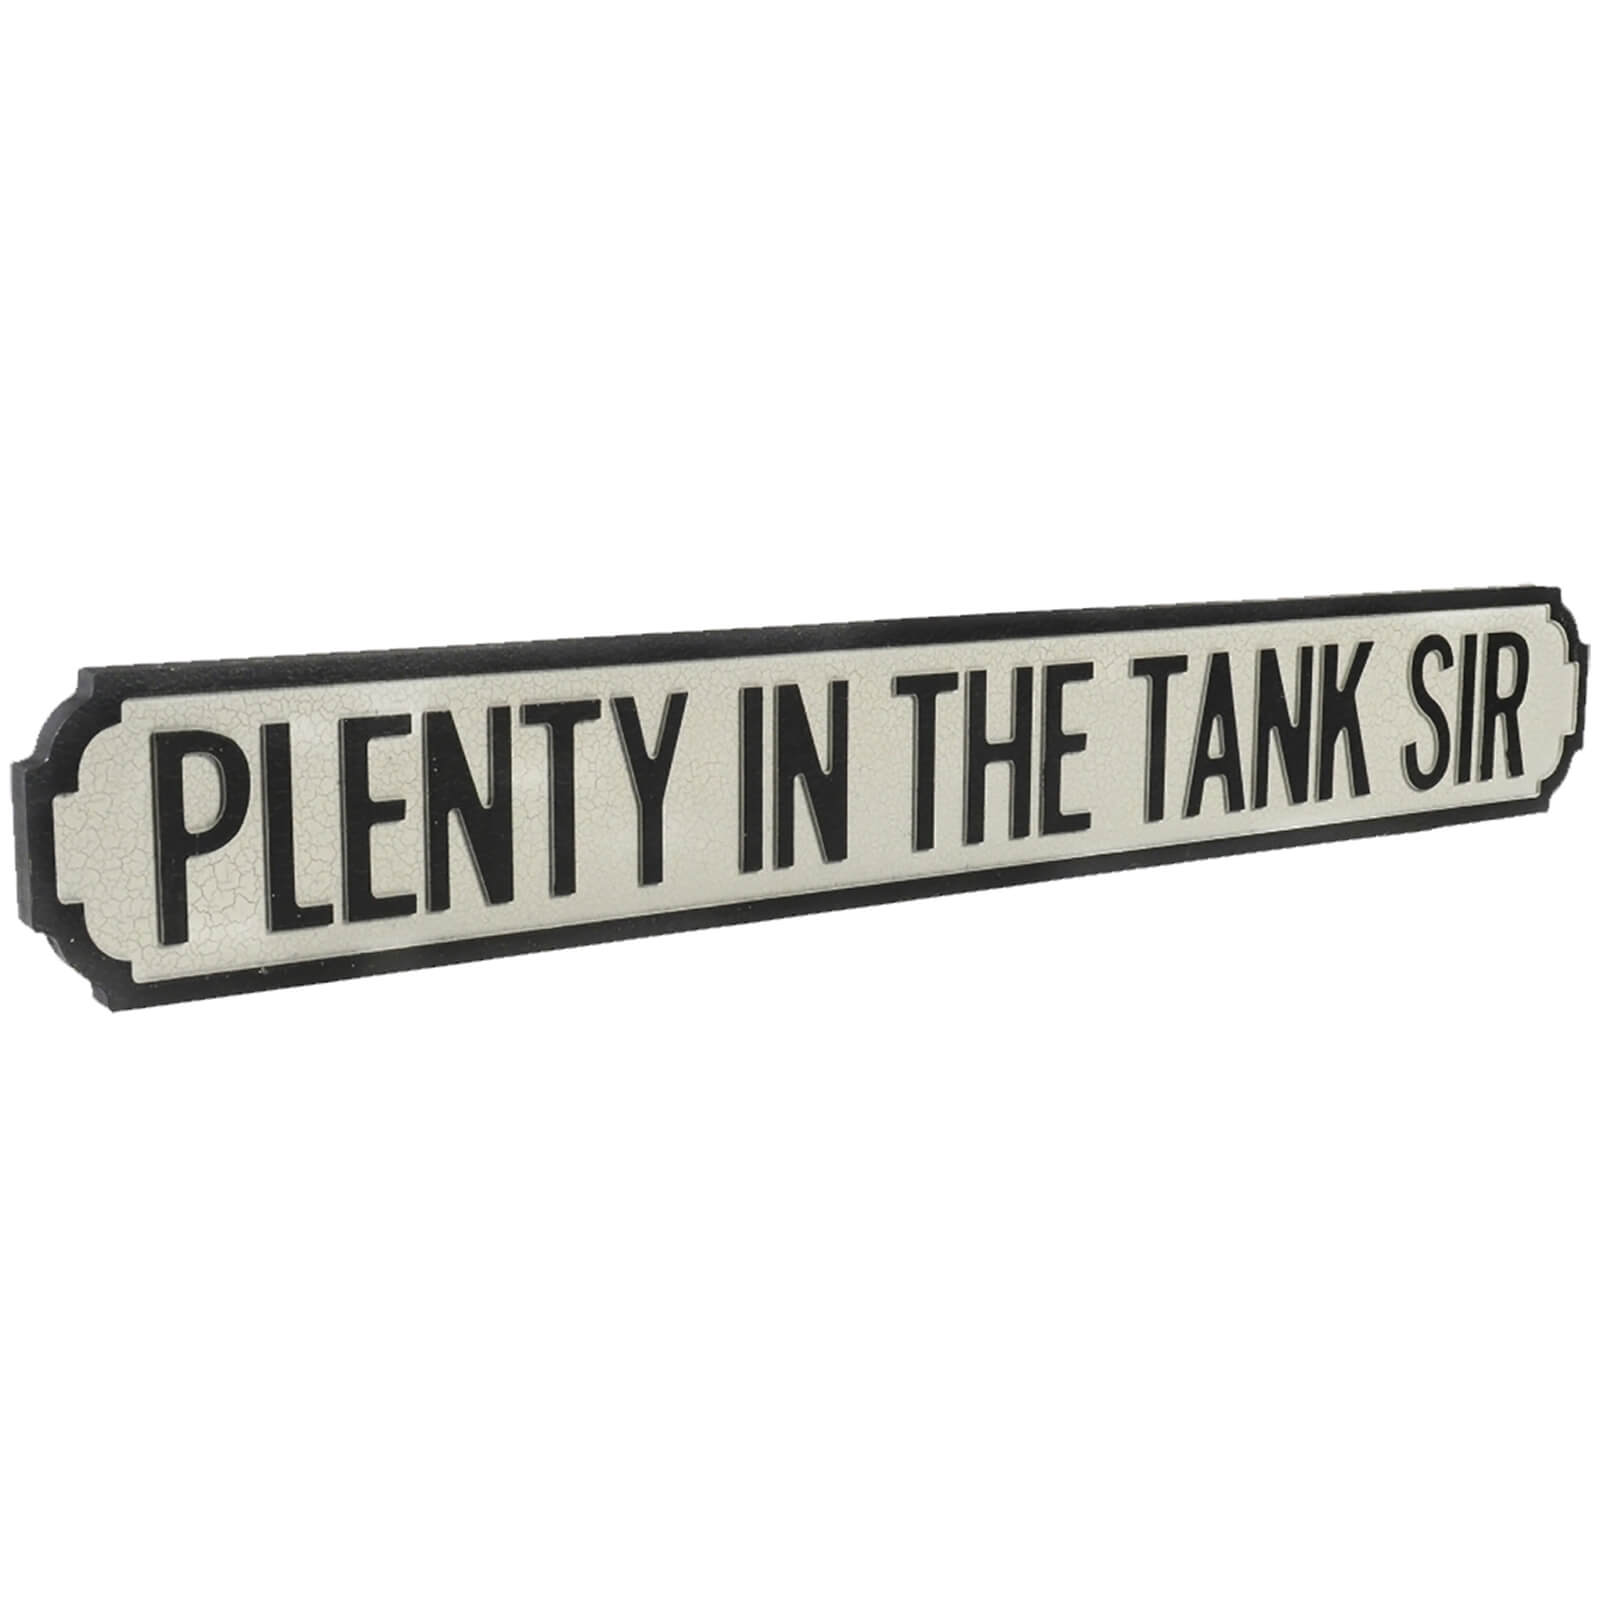 Shh Interiors Plenty in the Tank Sir Street Sign